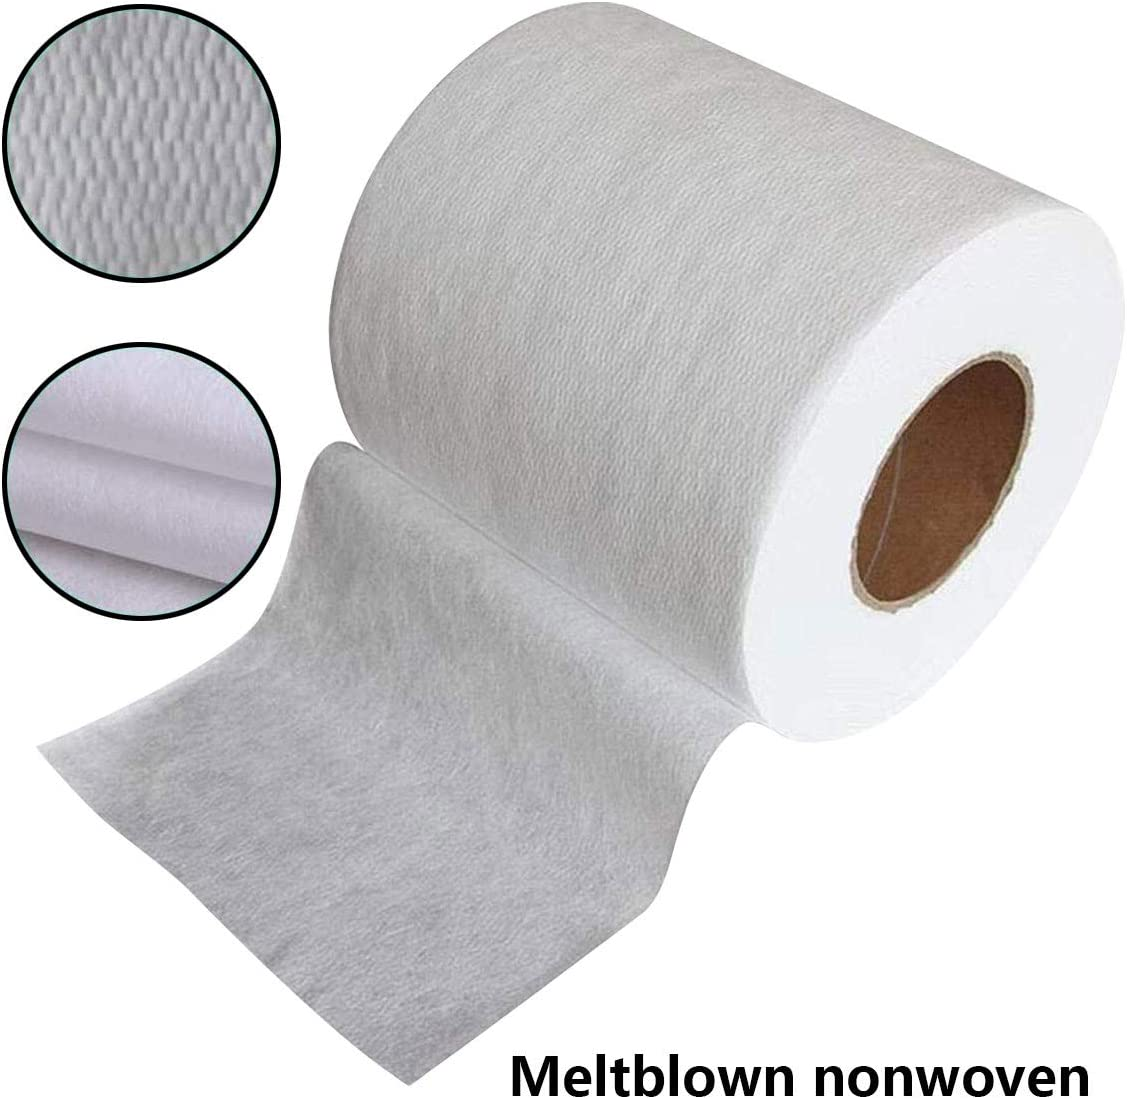 50M Filtering Efficiency Greater Than 95/% Non-Woven Fabric Melt-Blown Cloth Disposable Middle Layer Filter Microfiber Fabric Polypropylene Sediment Filters for Filtering